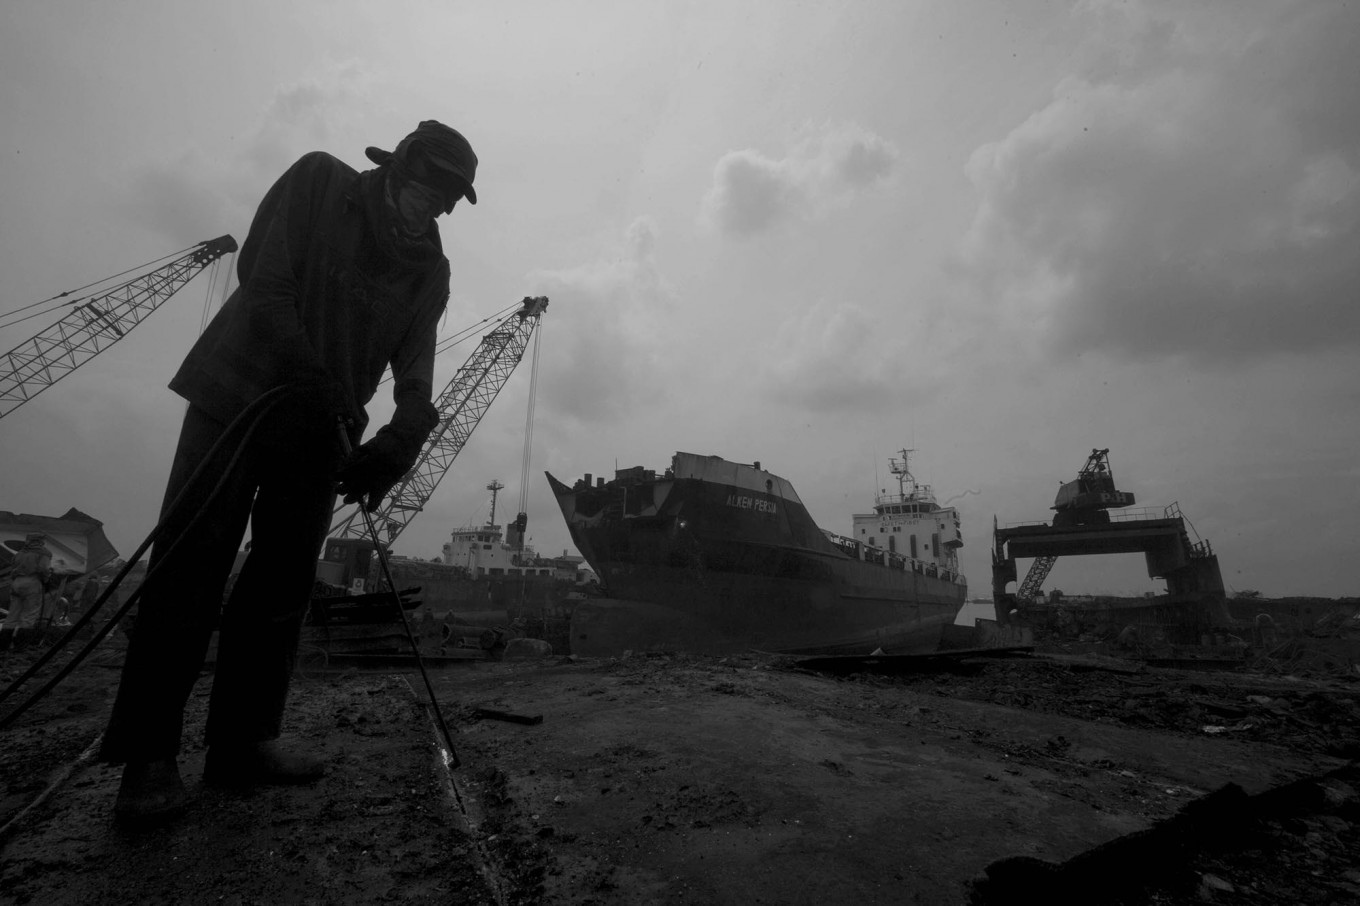 A worker cutting metal on a dock in Kamal, Madura Island, East Java, on Monday, Jan. 23, 2017. The sheet metal is sold to a smelter. Each worker earns Rp 100,000 per day. JP/Sigit Pamungkas